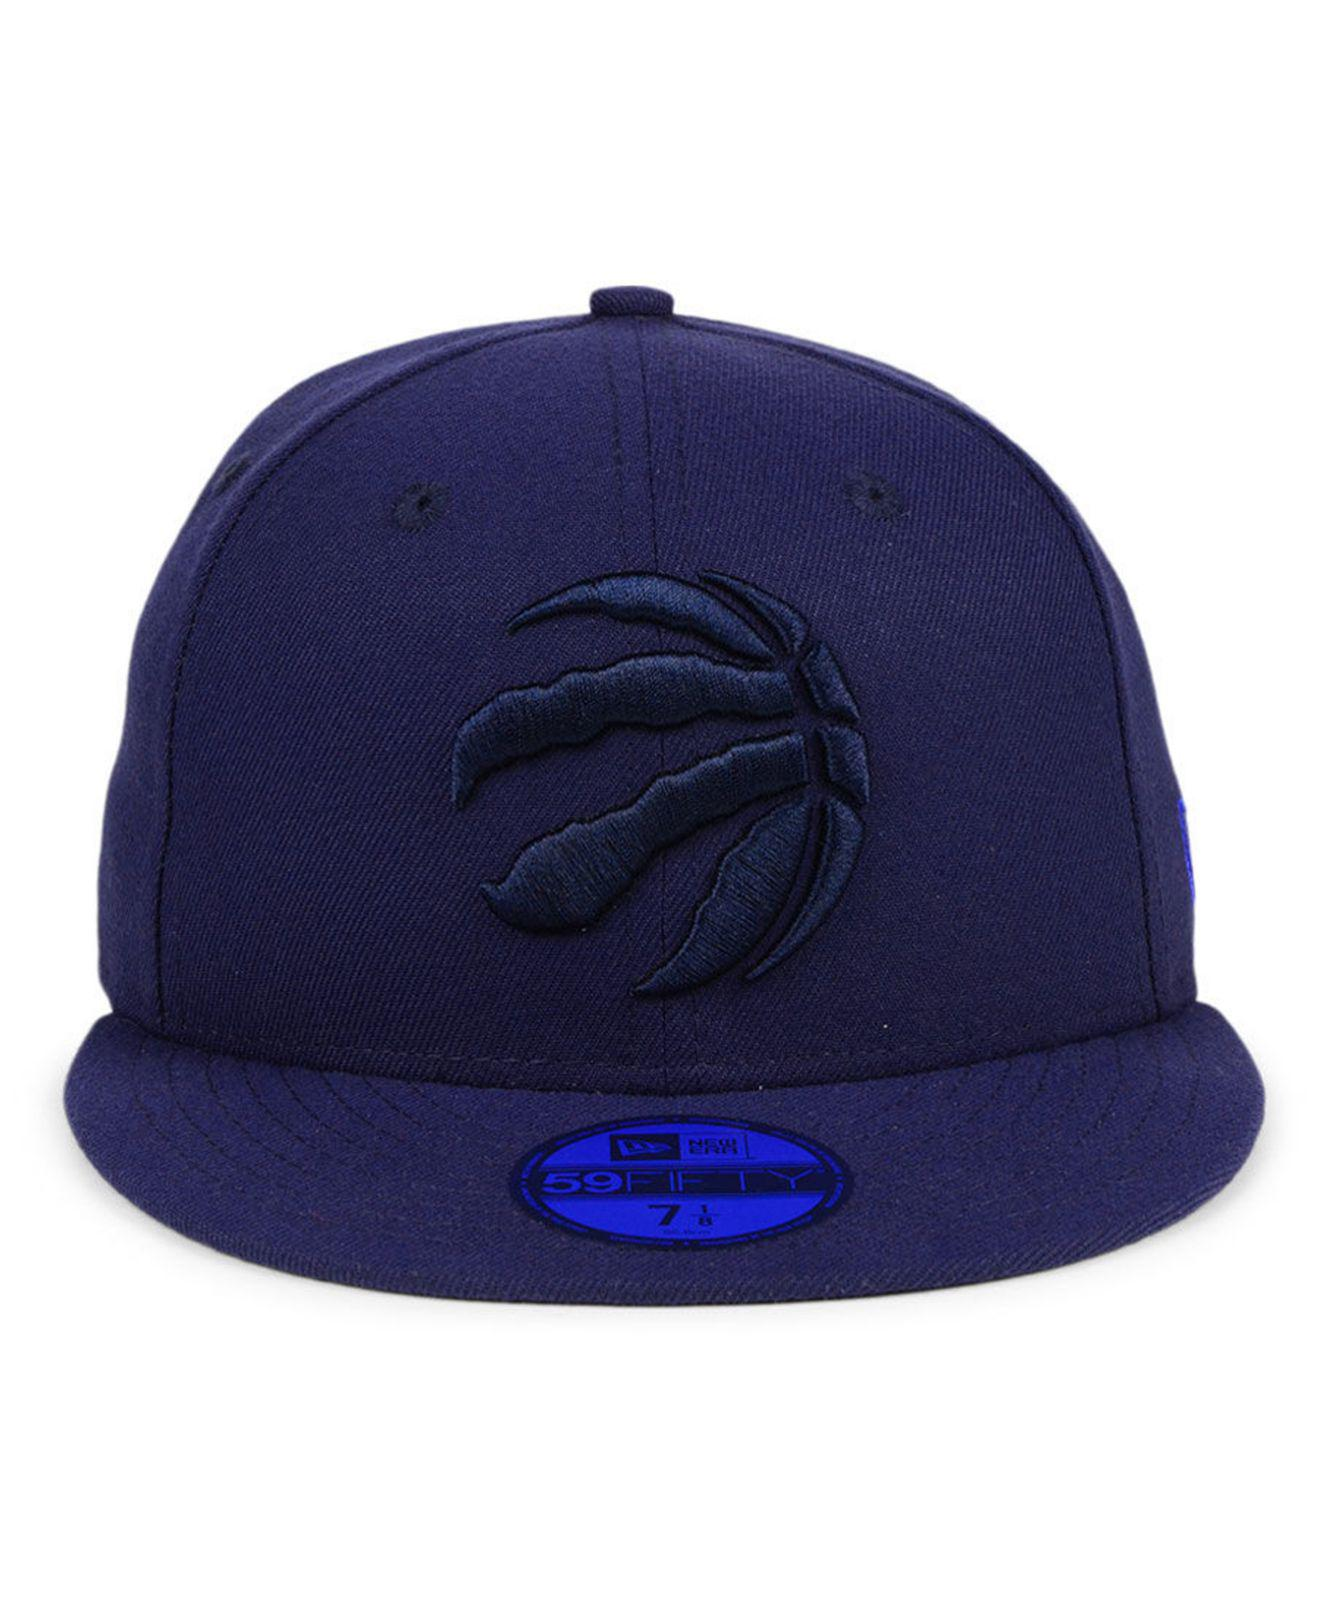 buy popular 57ce4 f1ad0 ... order lyst ktz toronto raptors color prism pack 59fifty fitted cap in  blue for men 2c5a8